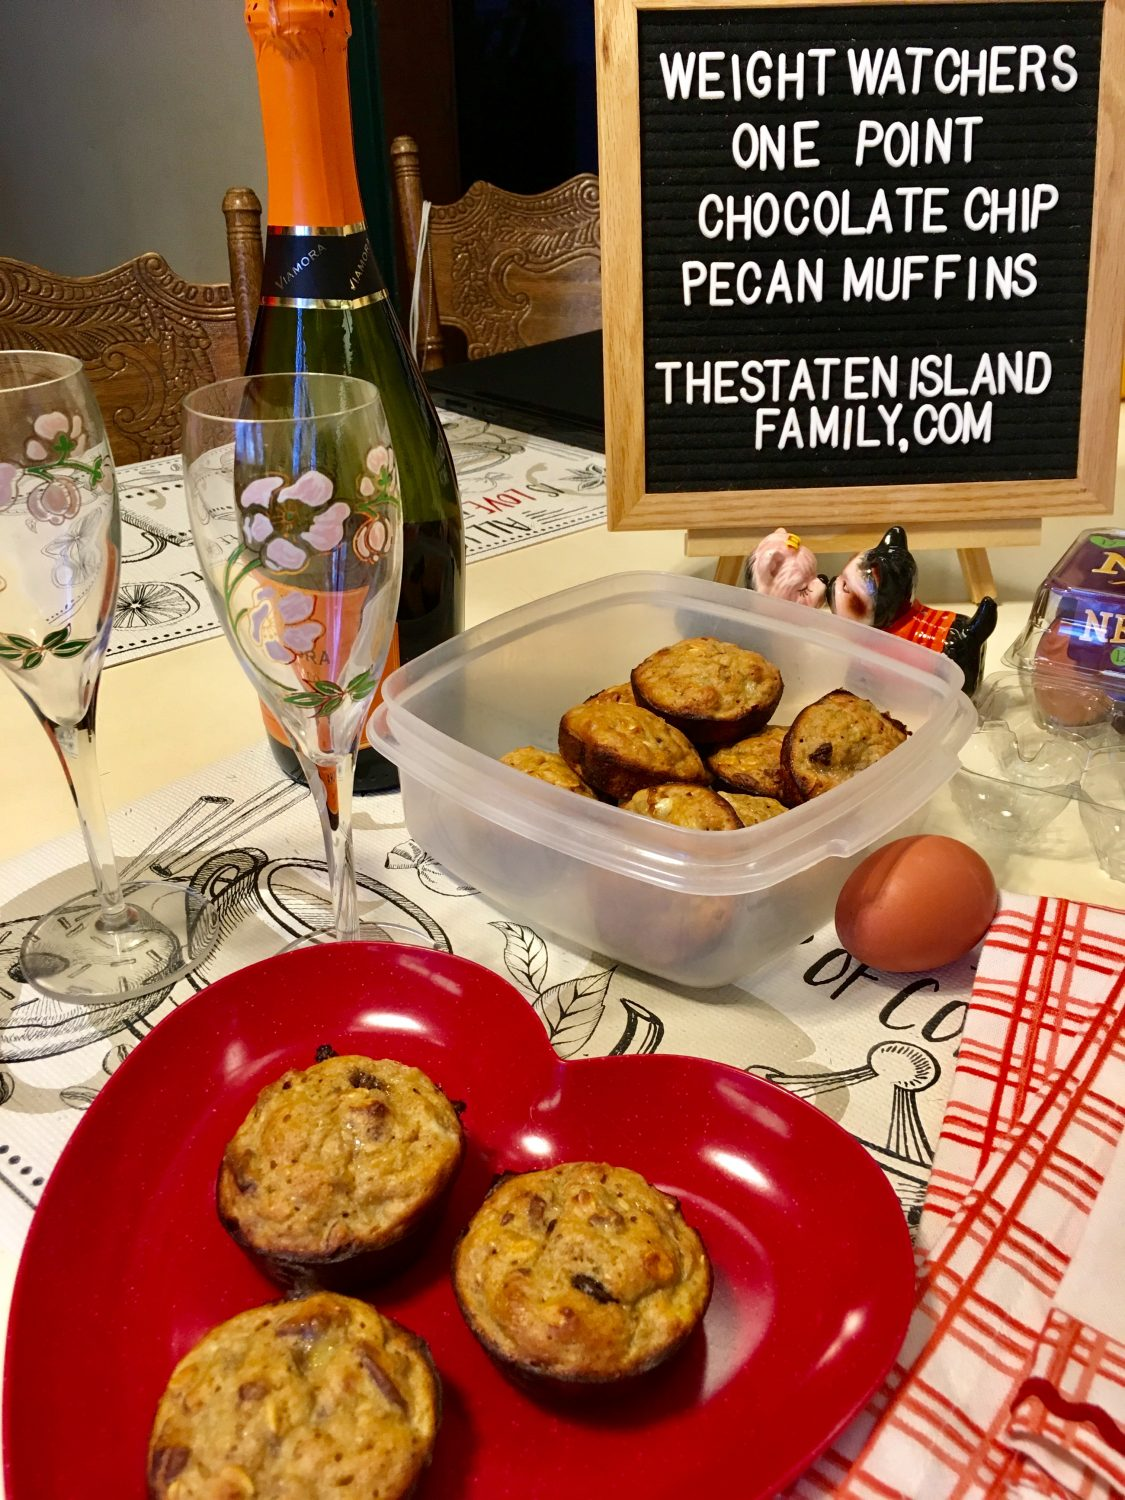 Weight Watchers One Point Chocolate Chip Pecan Muffins